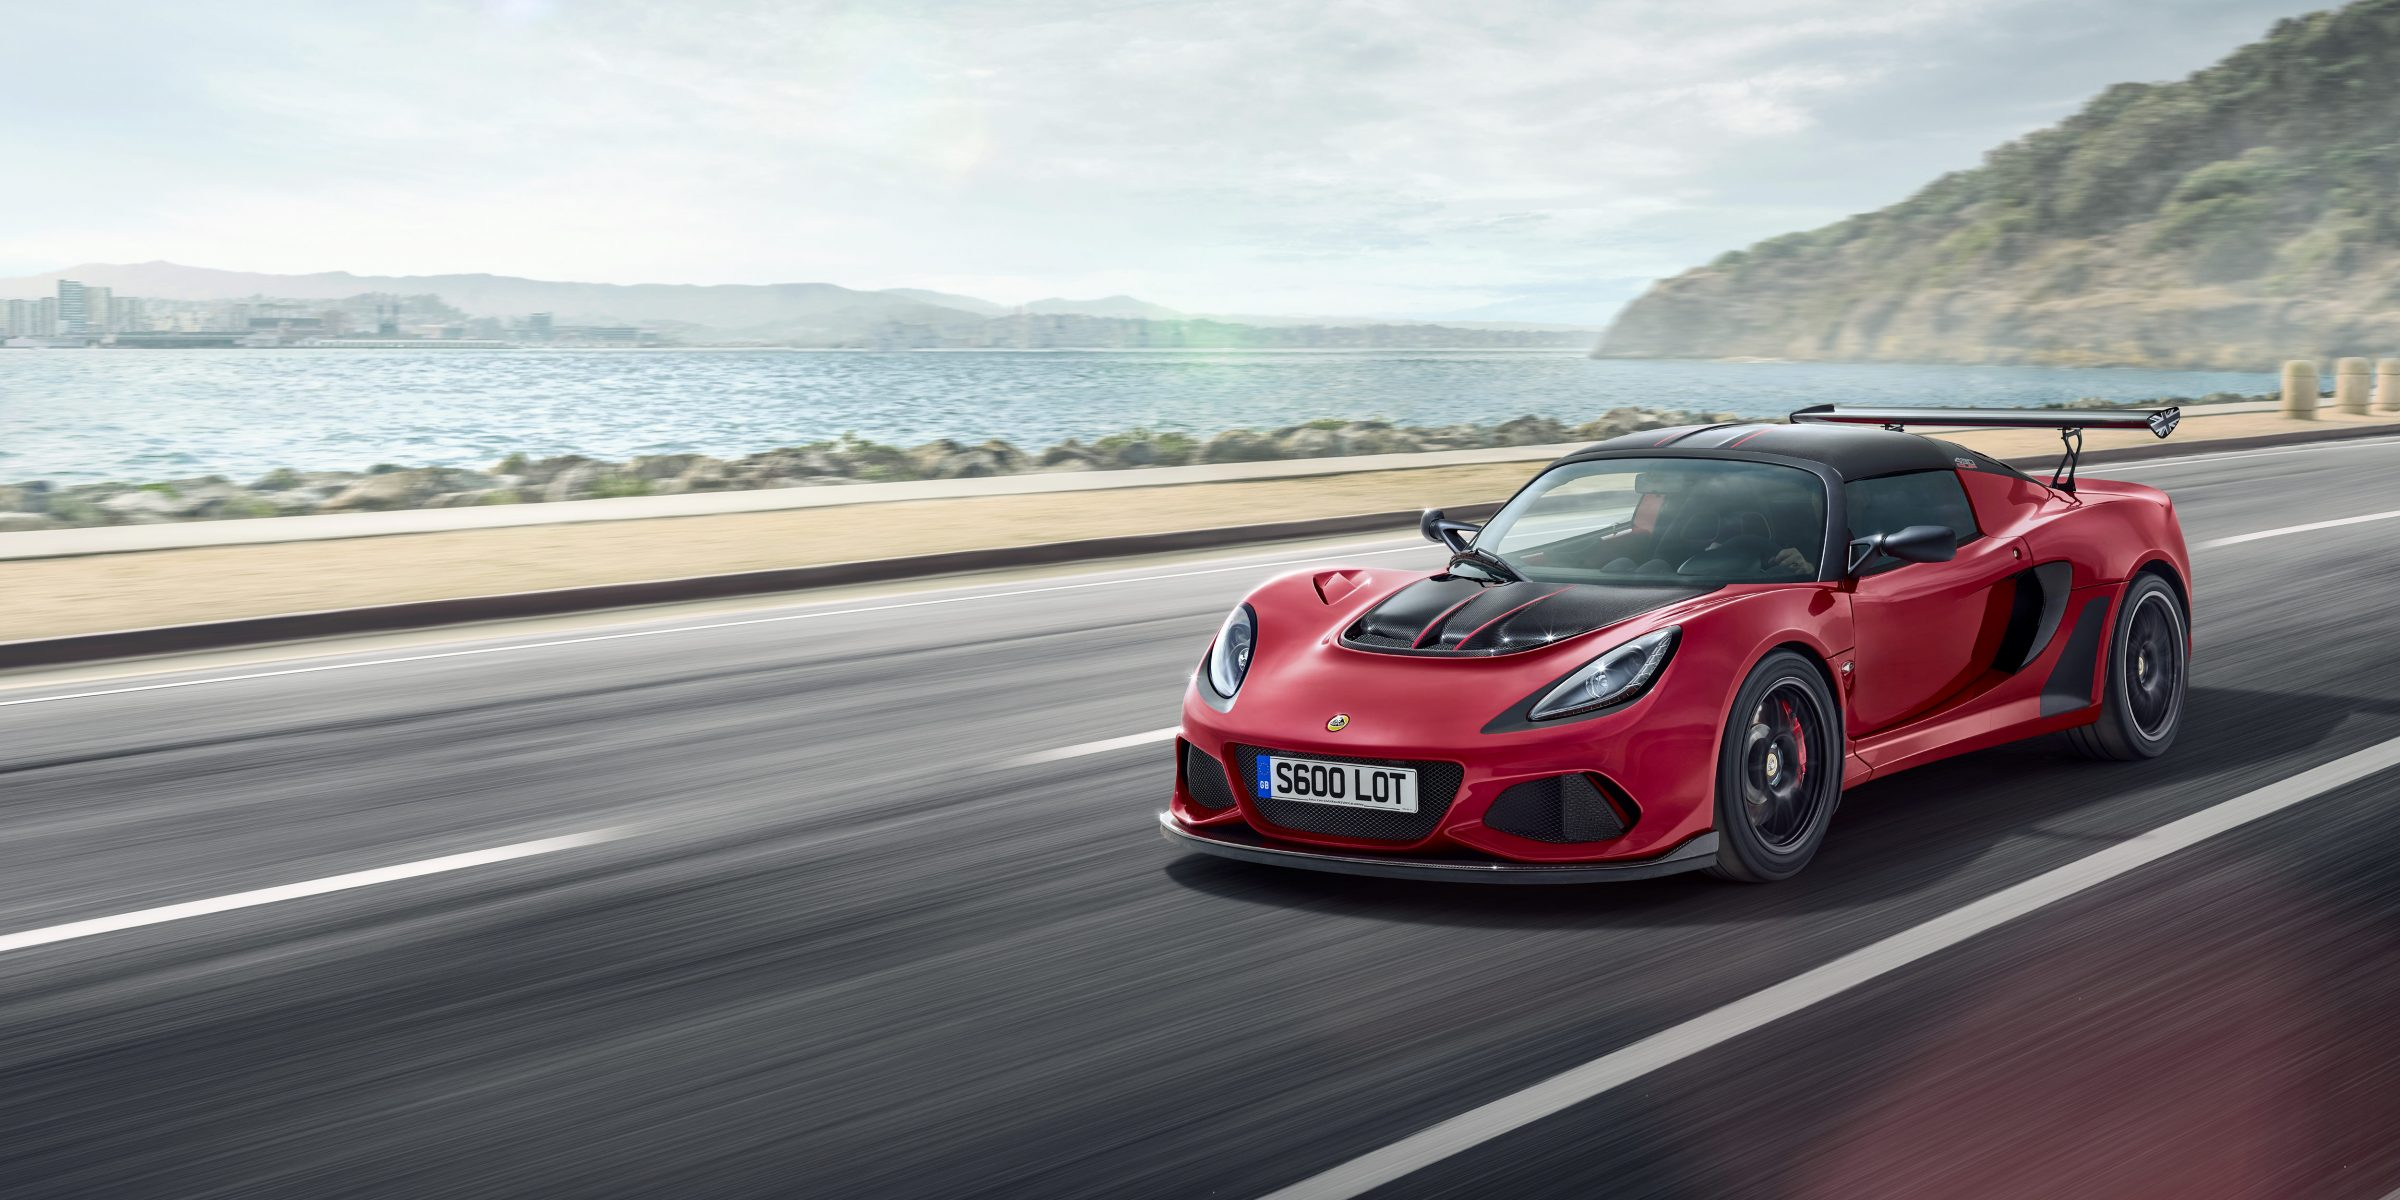 EXIGE SPORT 350 BLENDS THE EXTREME WITH THE SUBLIME